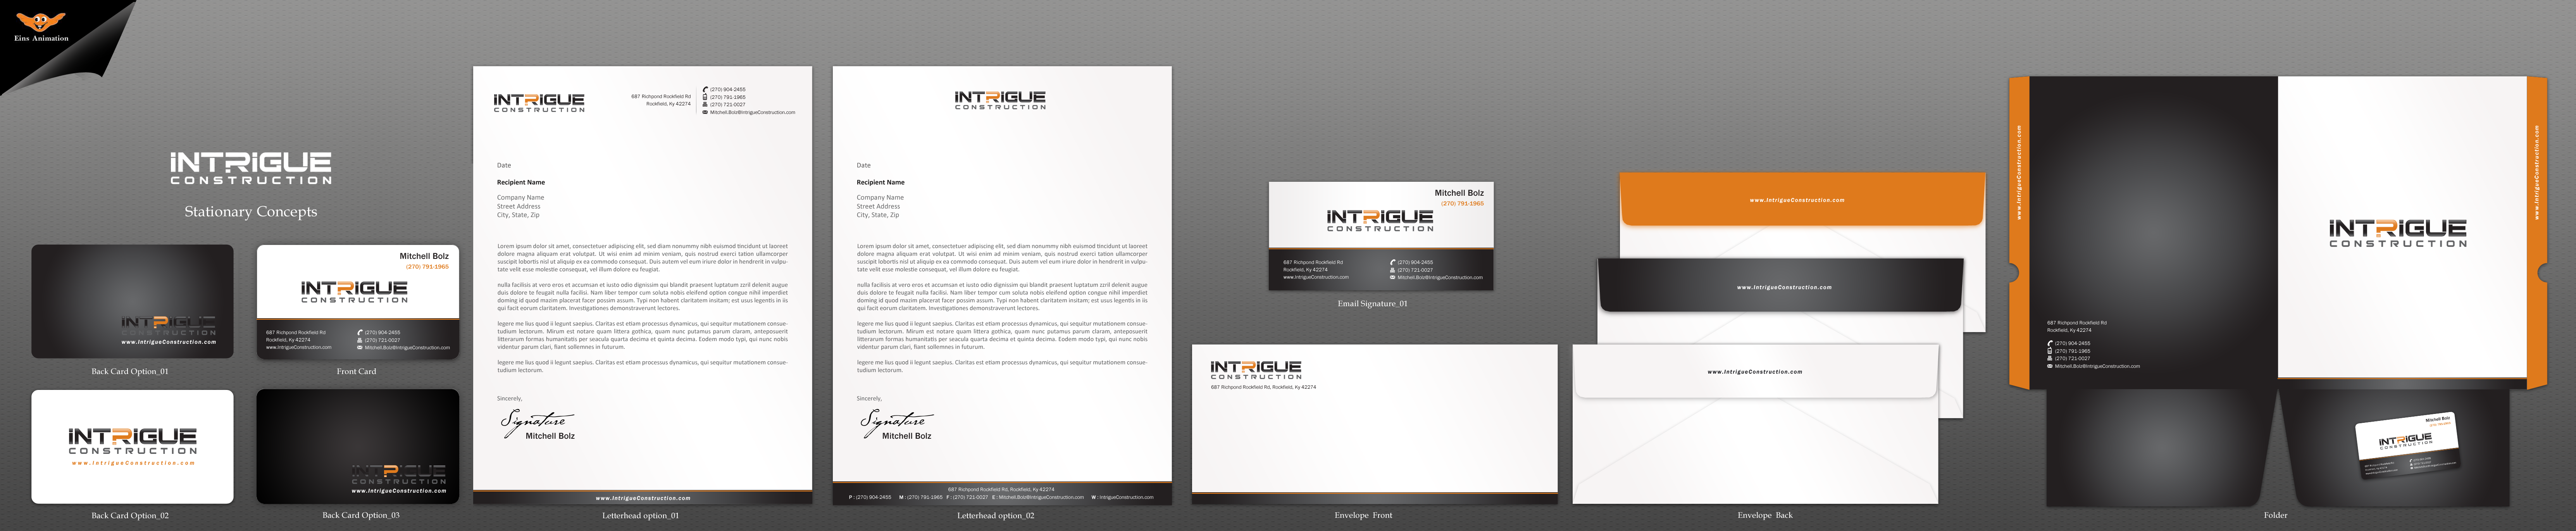 intrigue construction biz cards by intrigue zilliondesigns